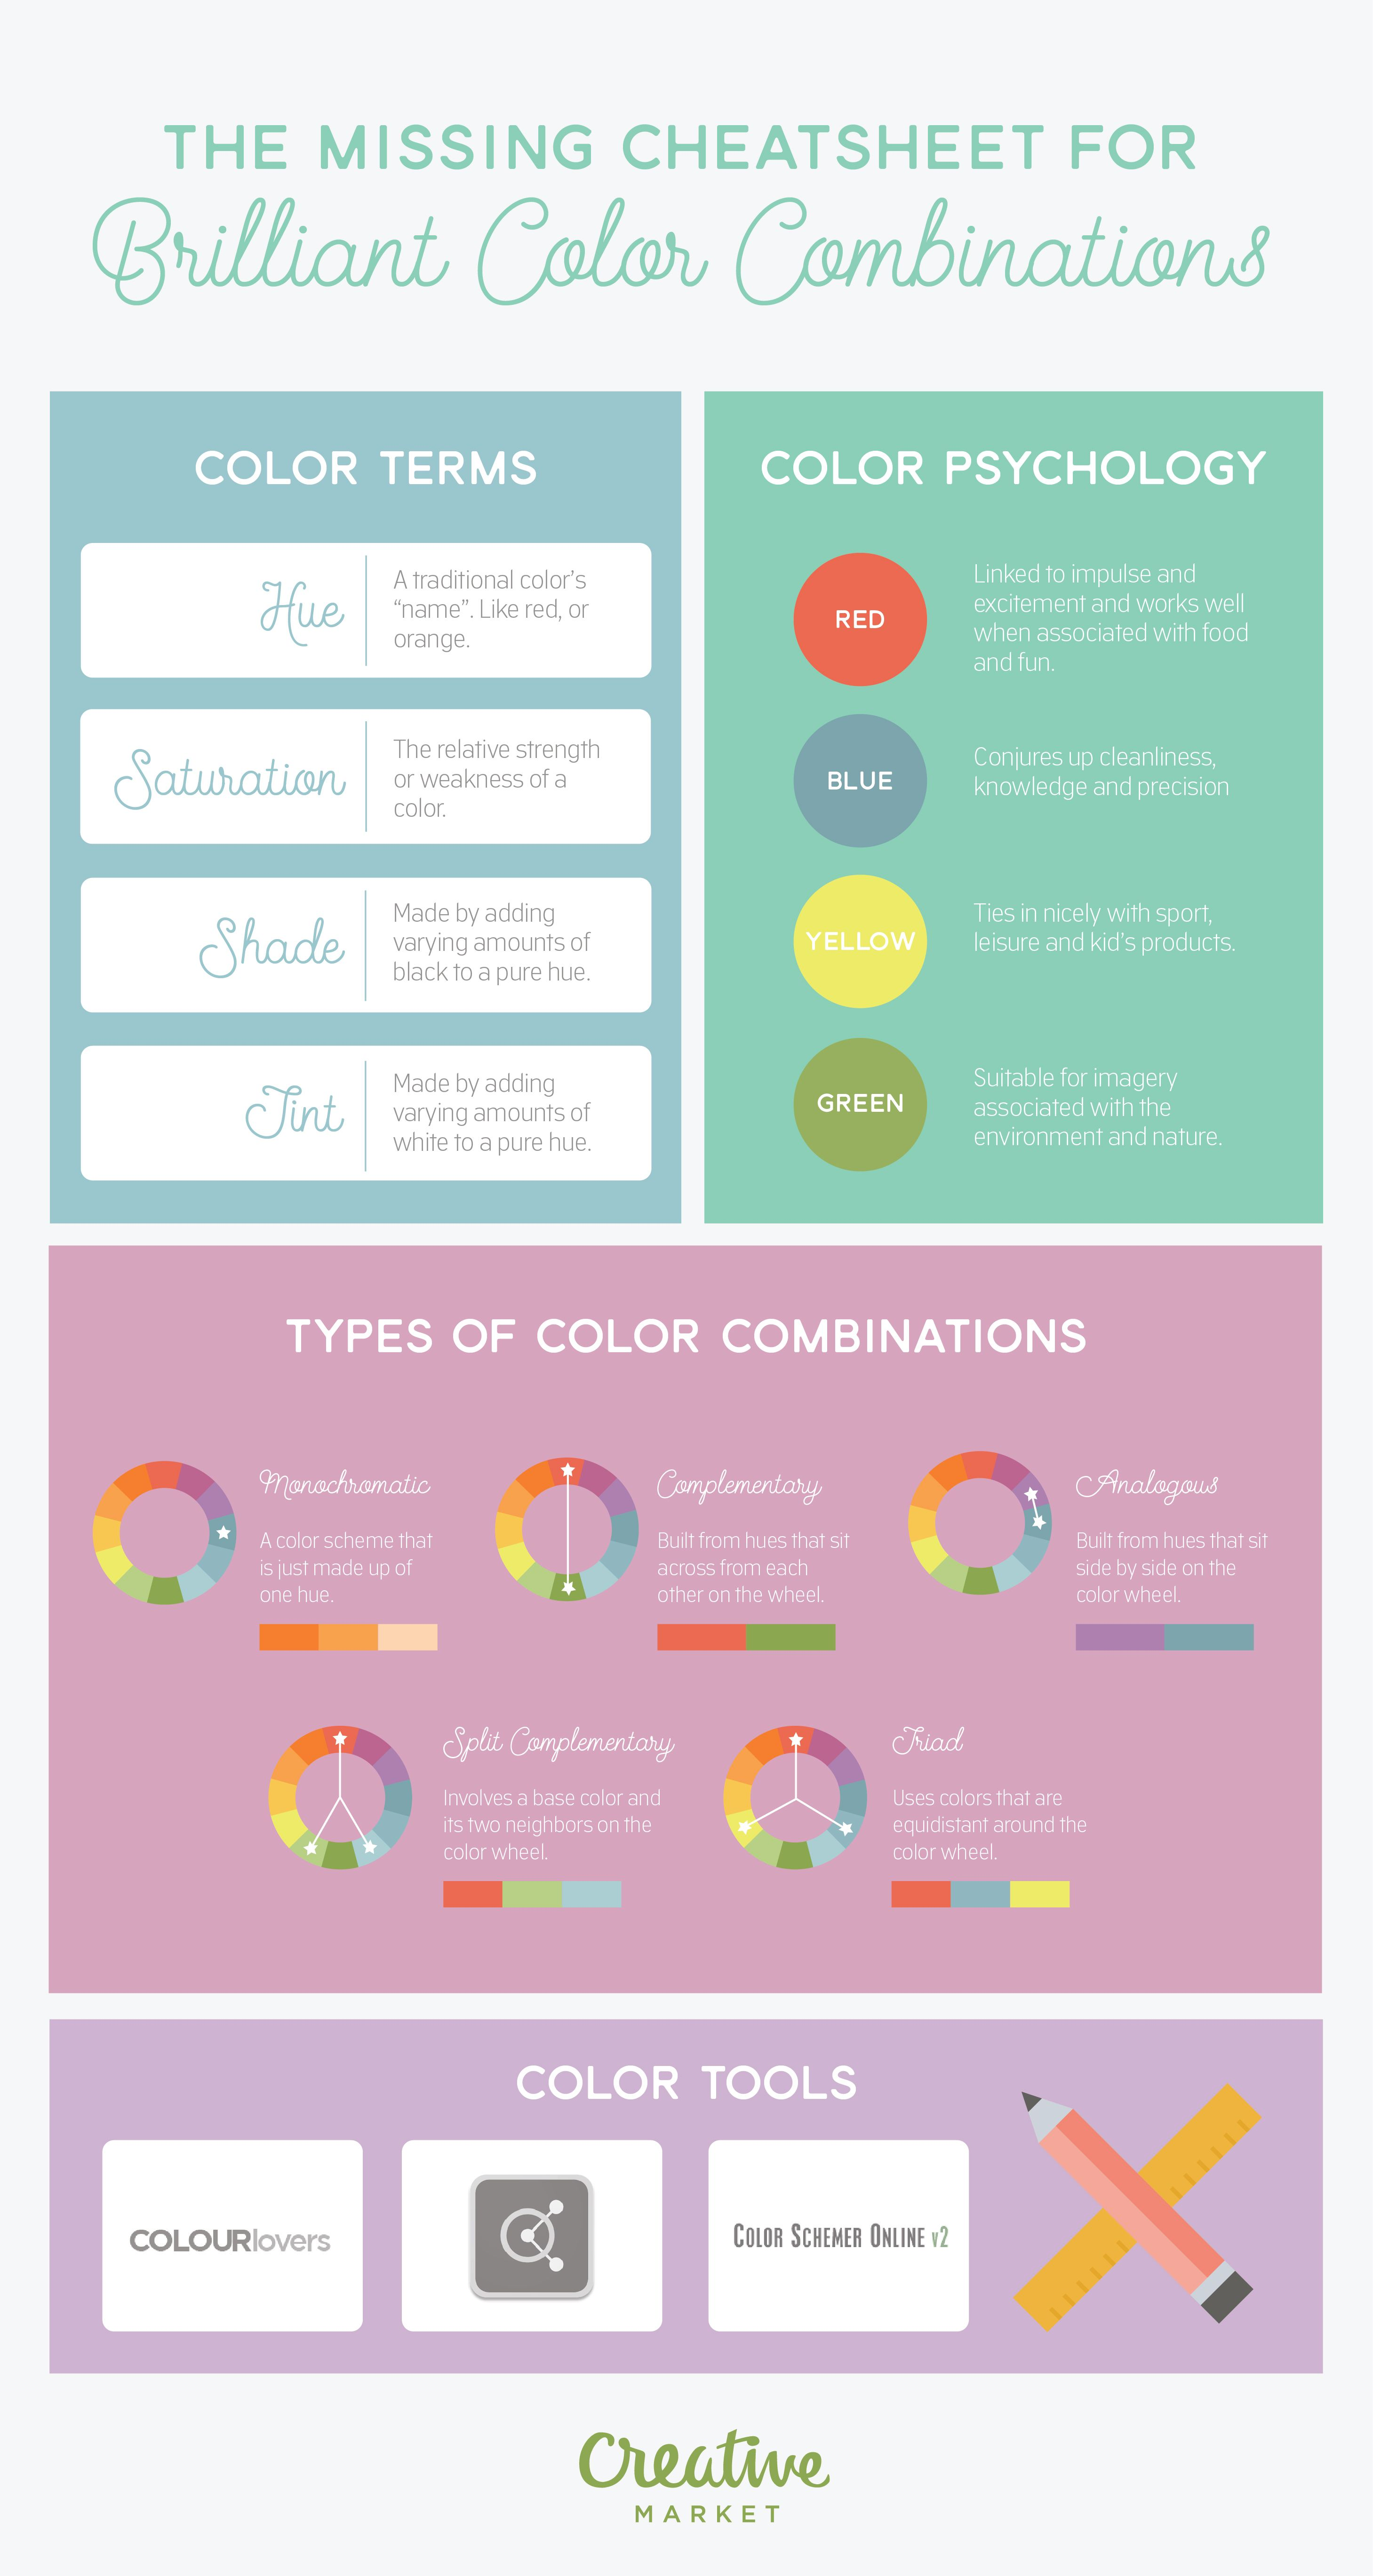 Colors web design psychology - On The Creative Market Blog The Missing Cheatsheet For Brilliant Color Combinations